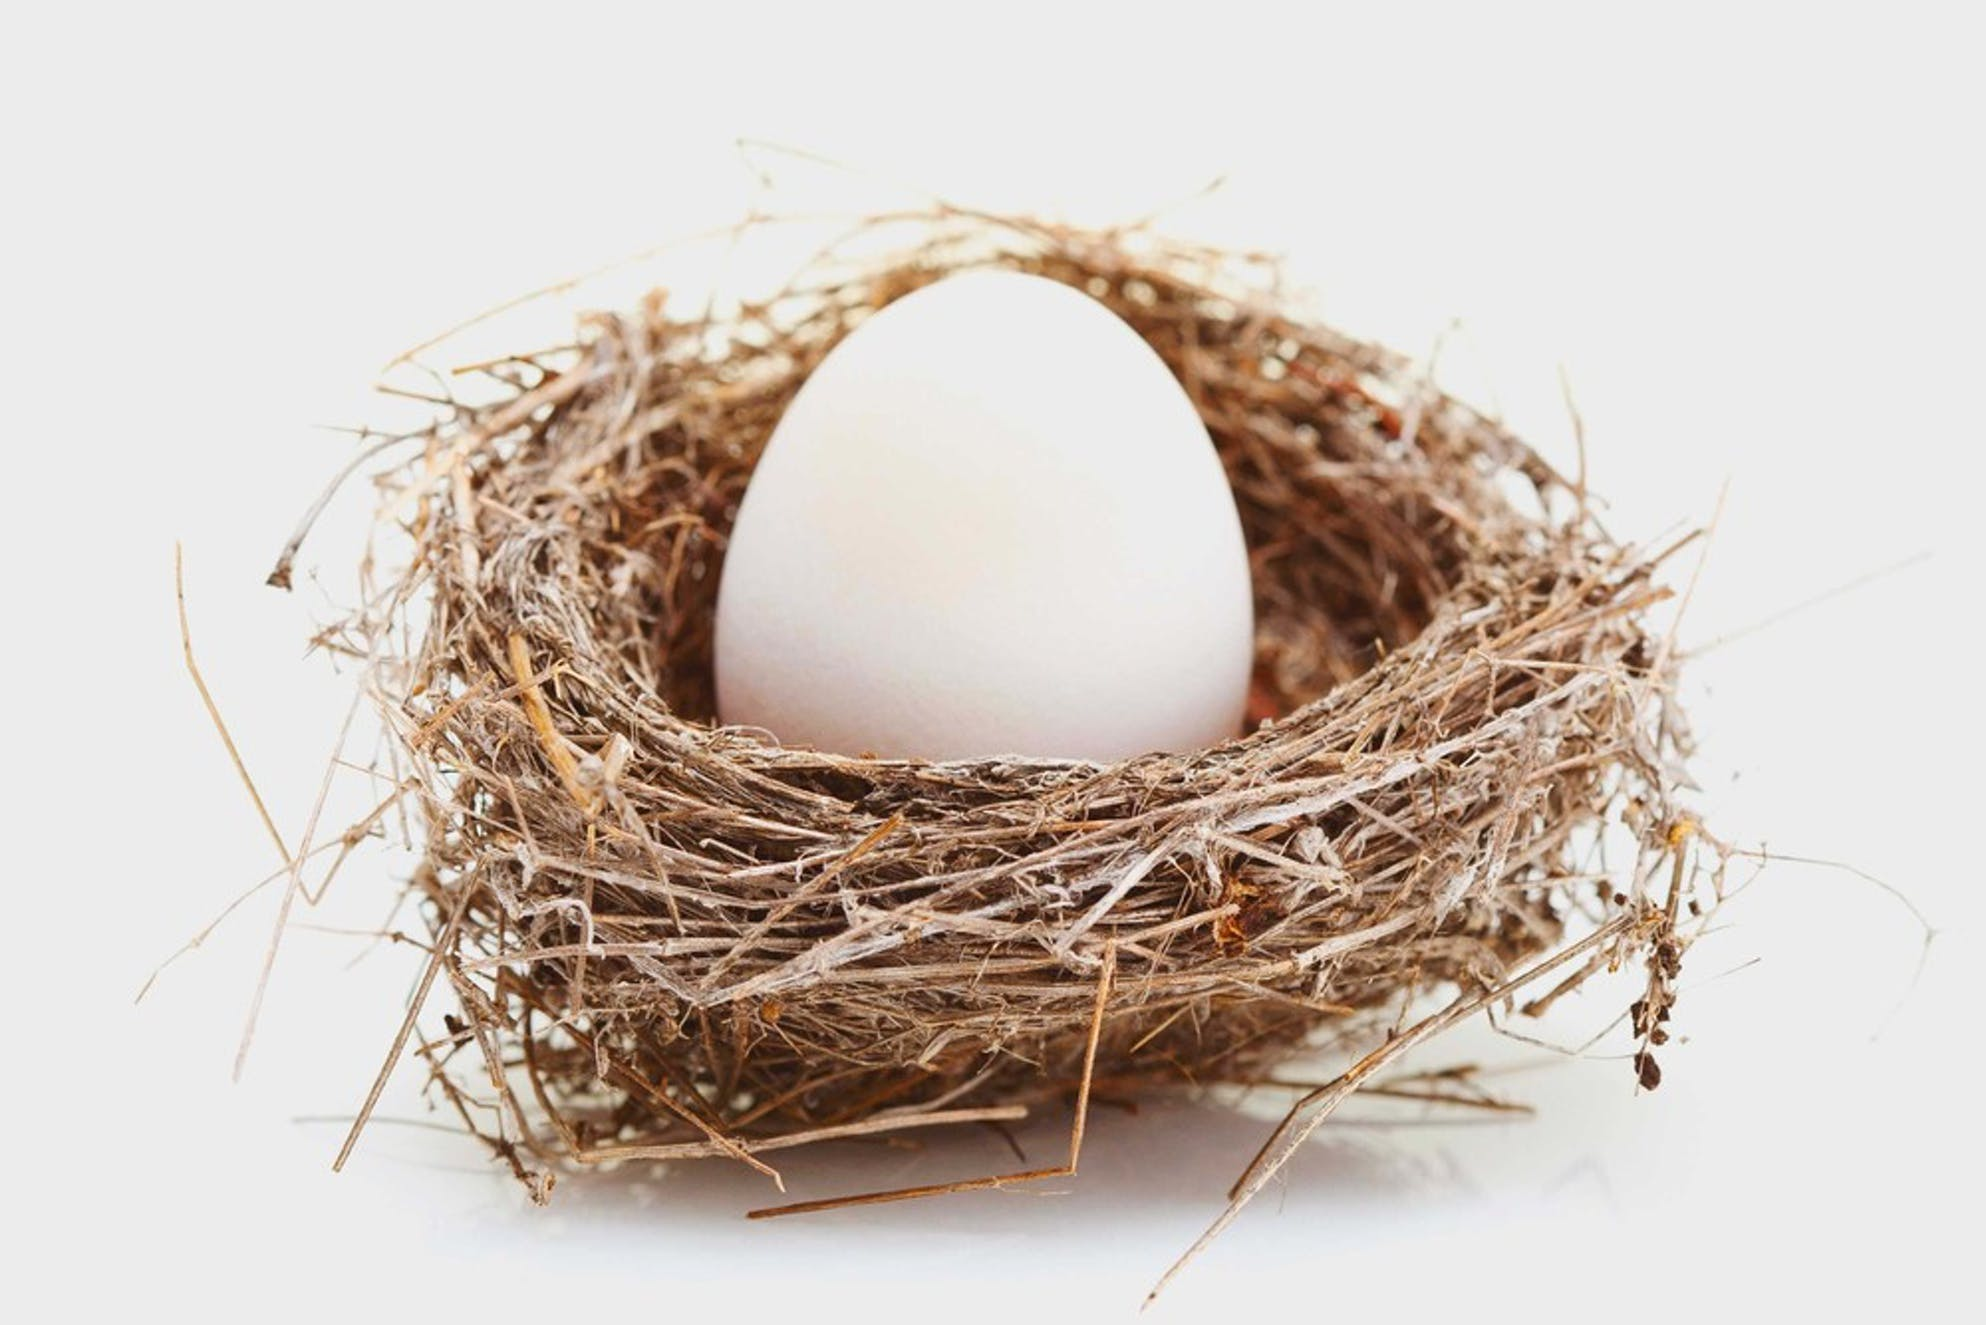 Egg in the next symbolizing IRA and Roth IRA